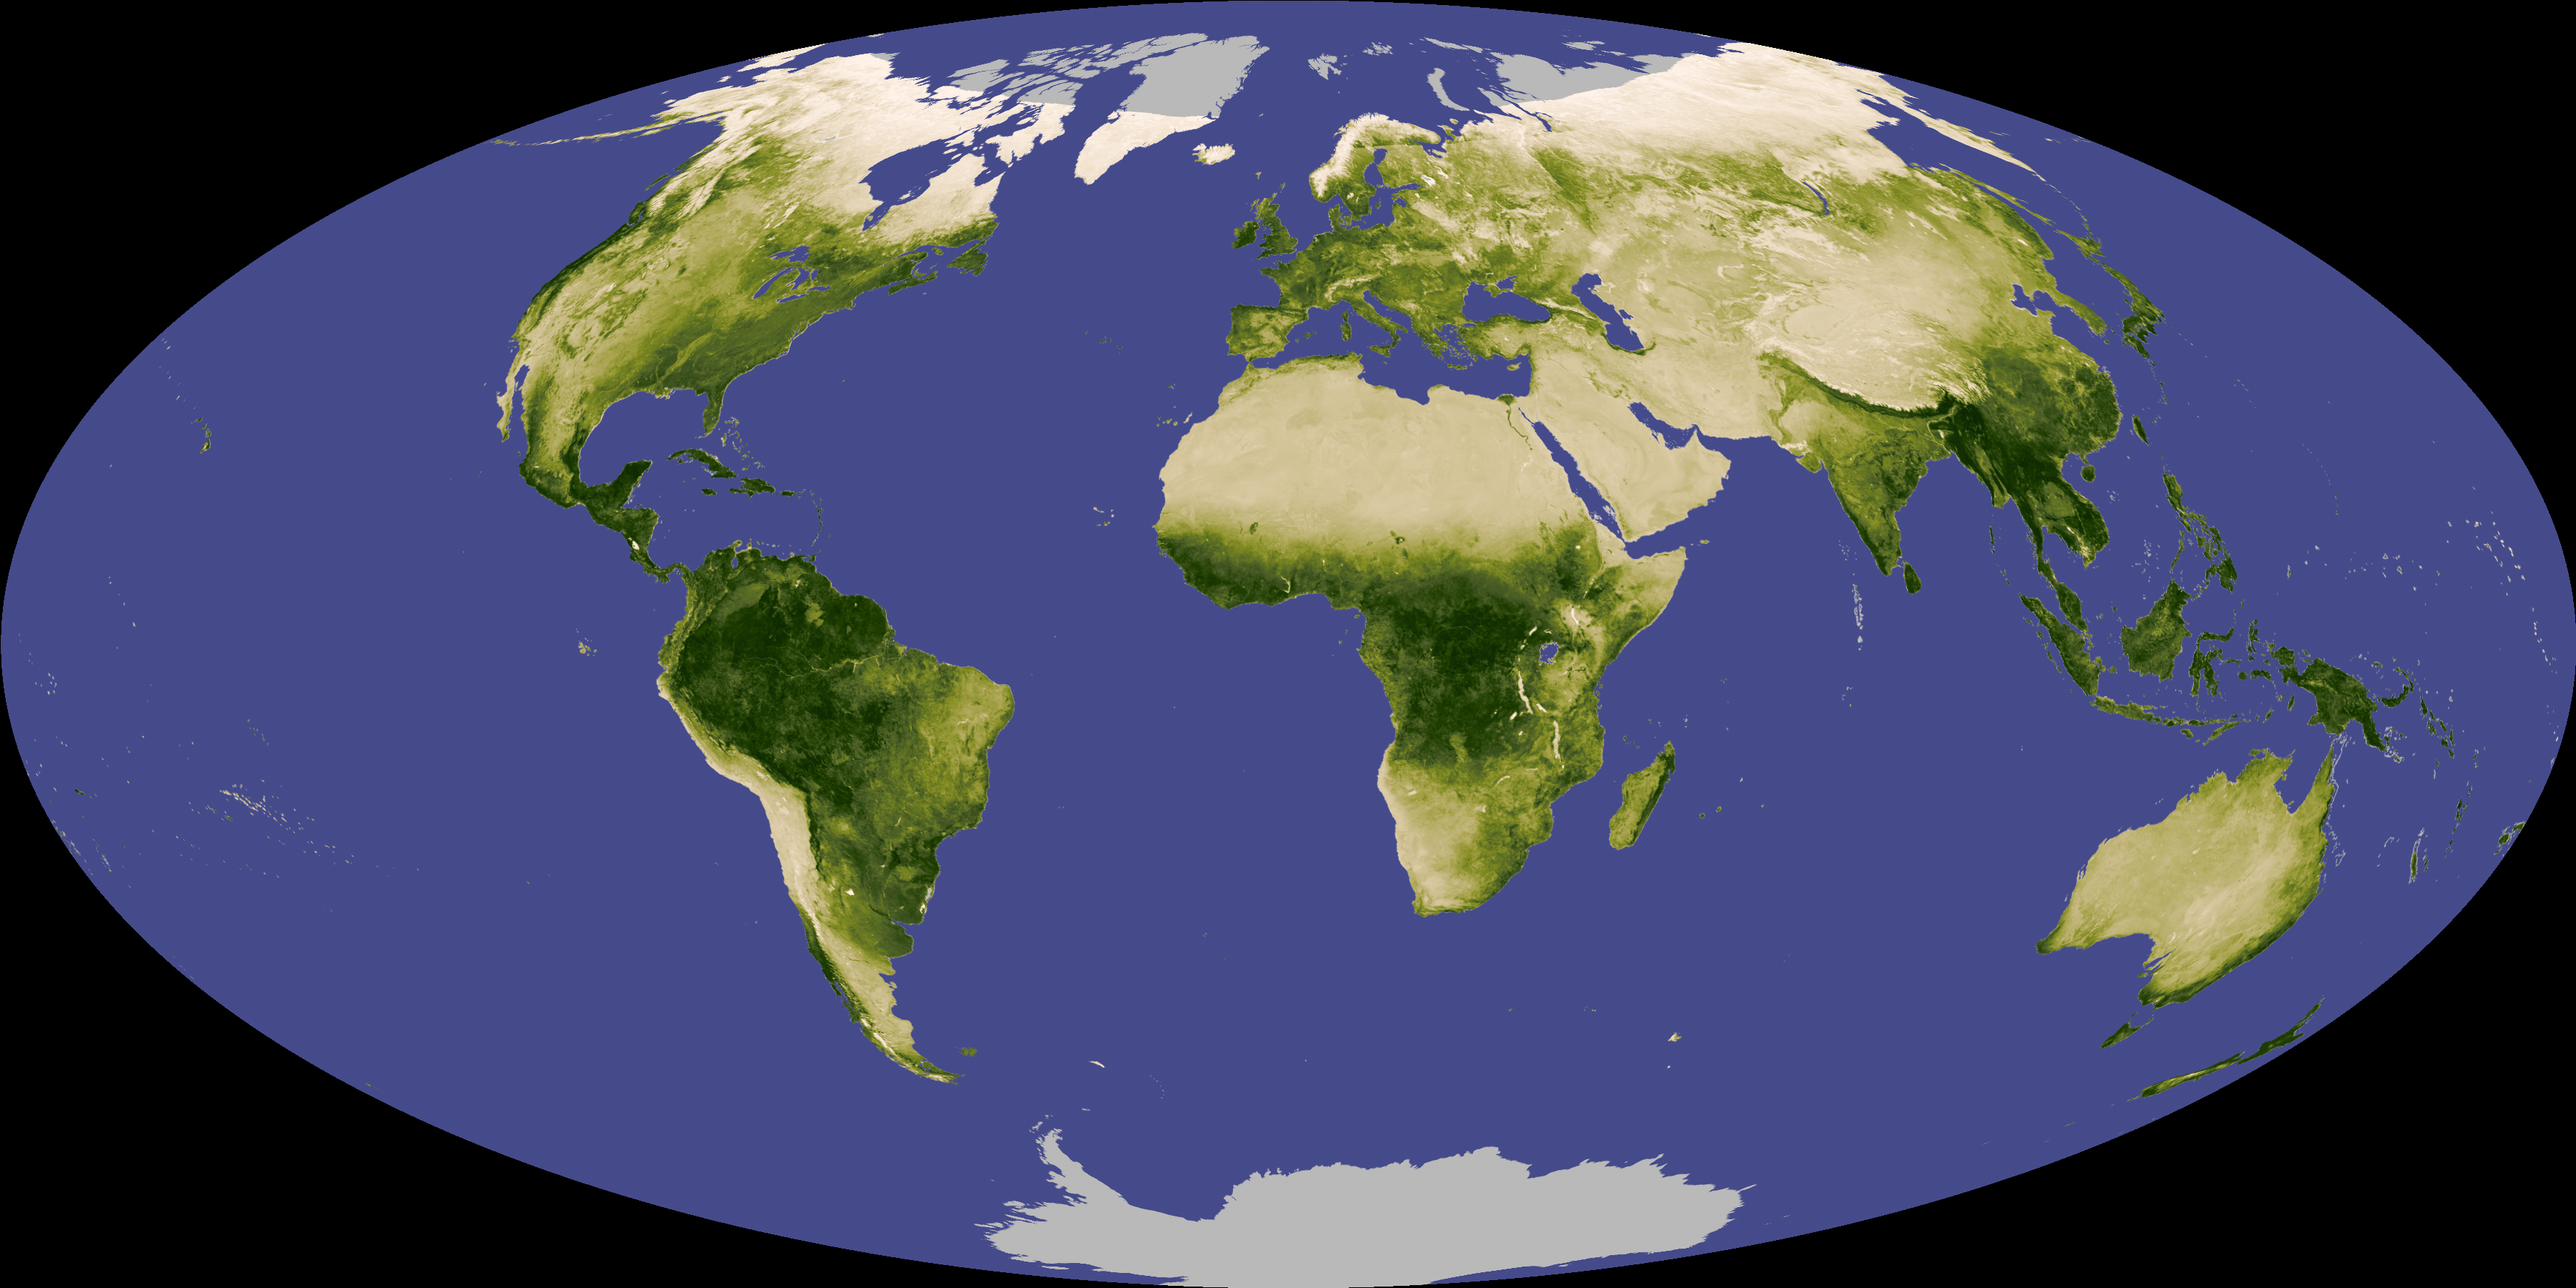 Energy balance soil erosion climate change and global for Soil 4 climate